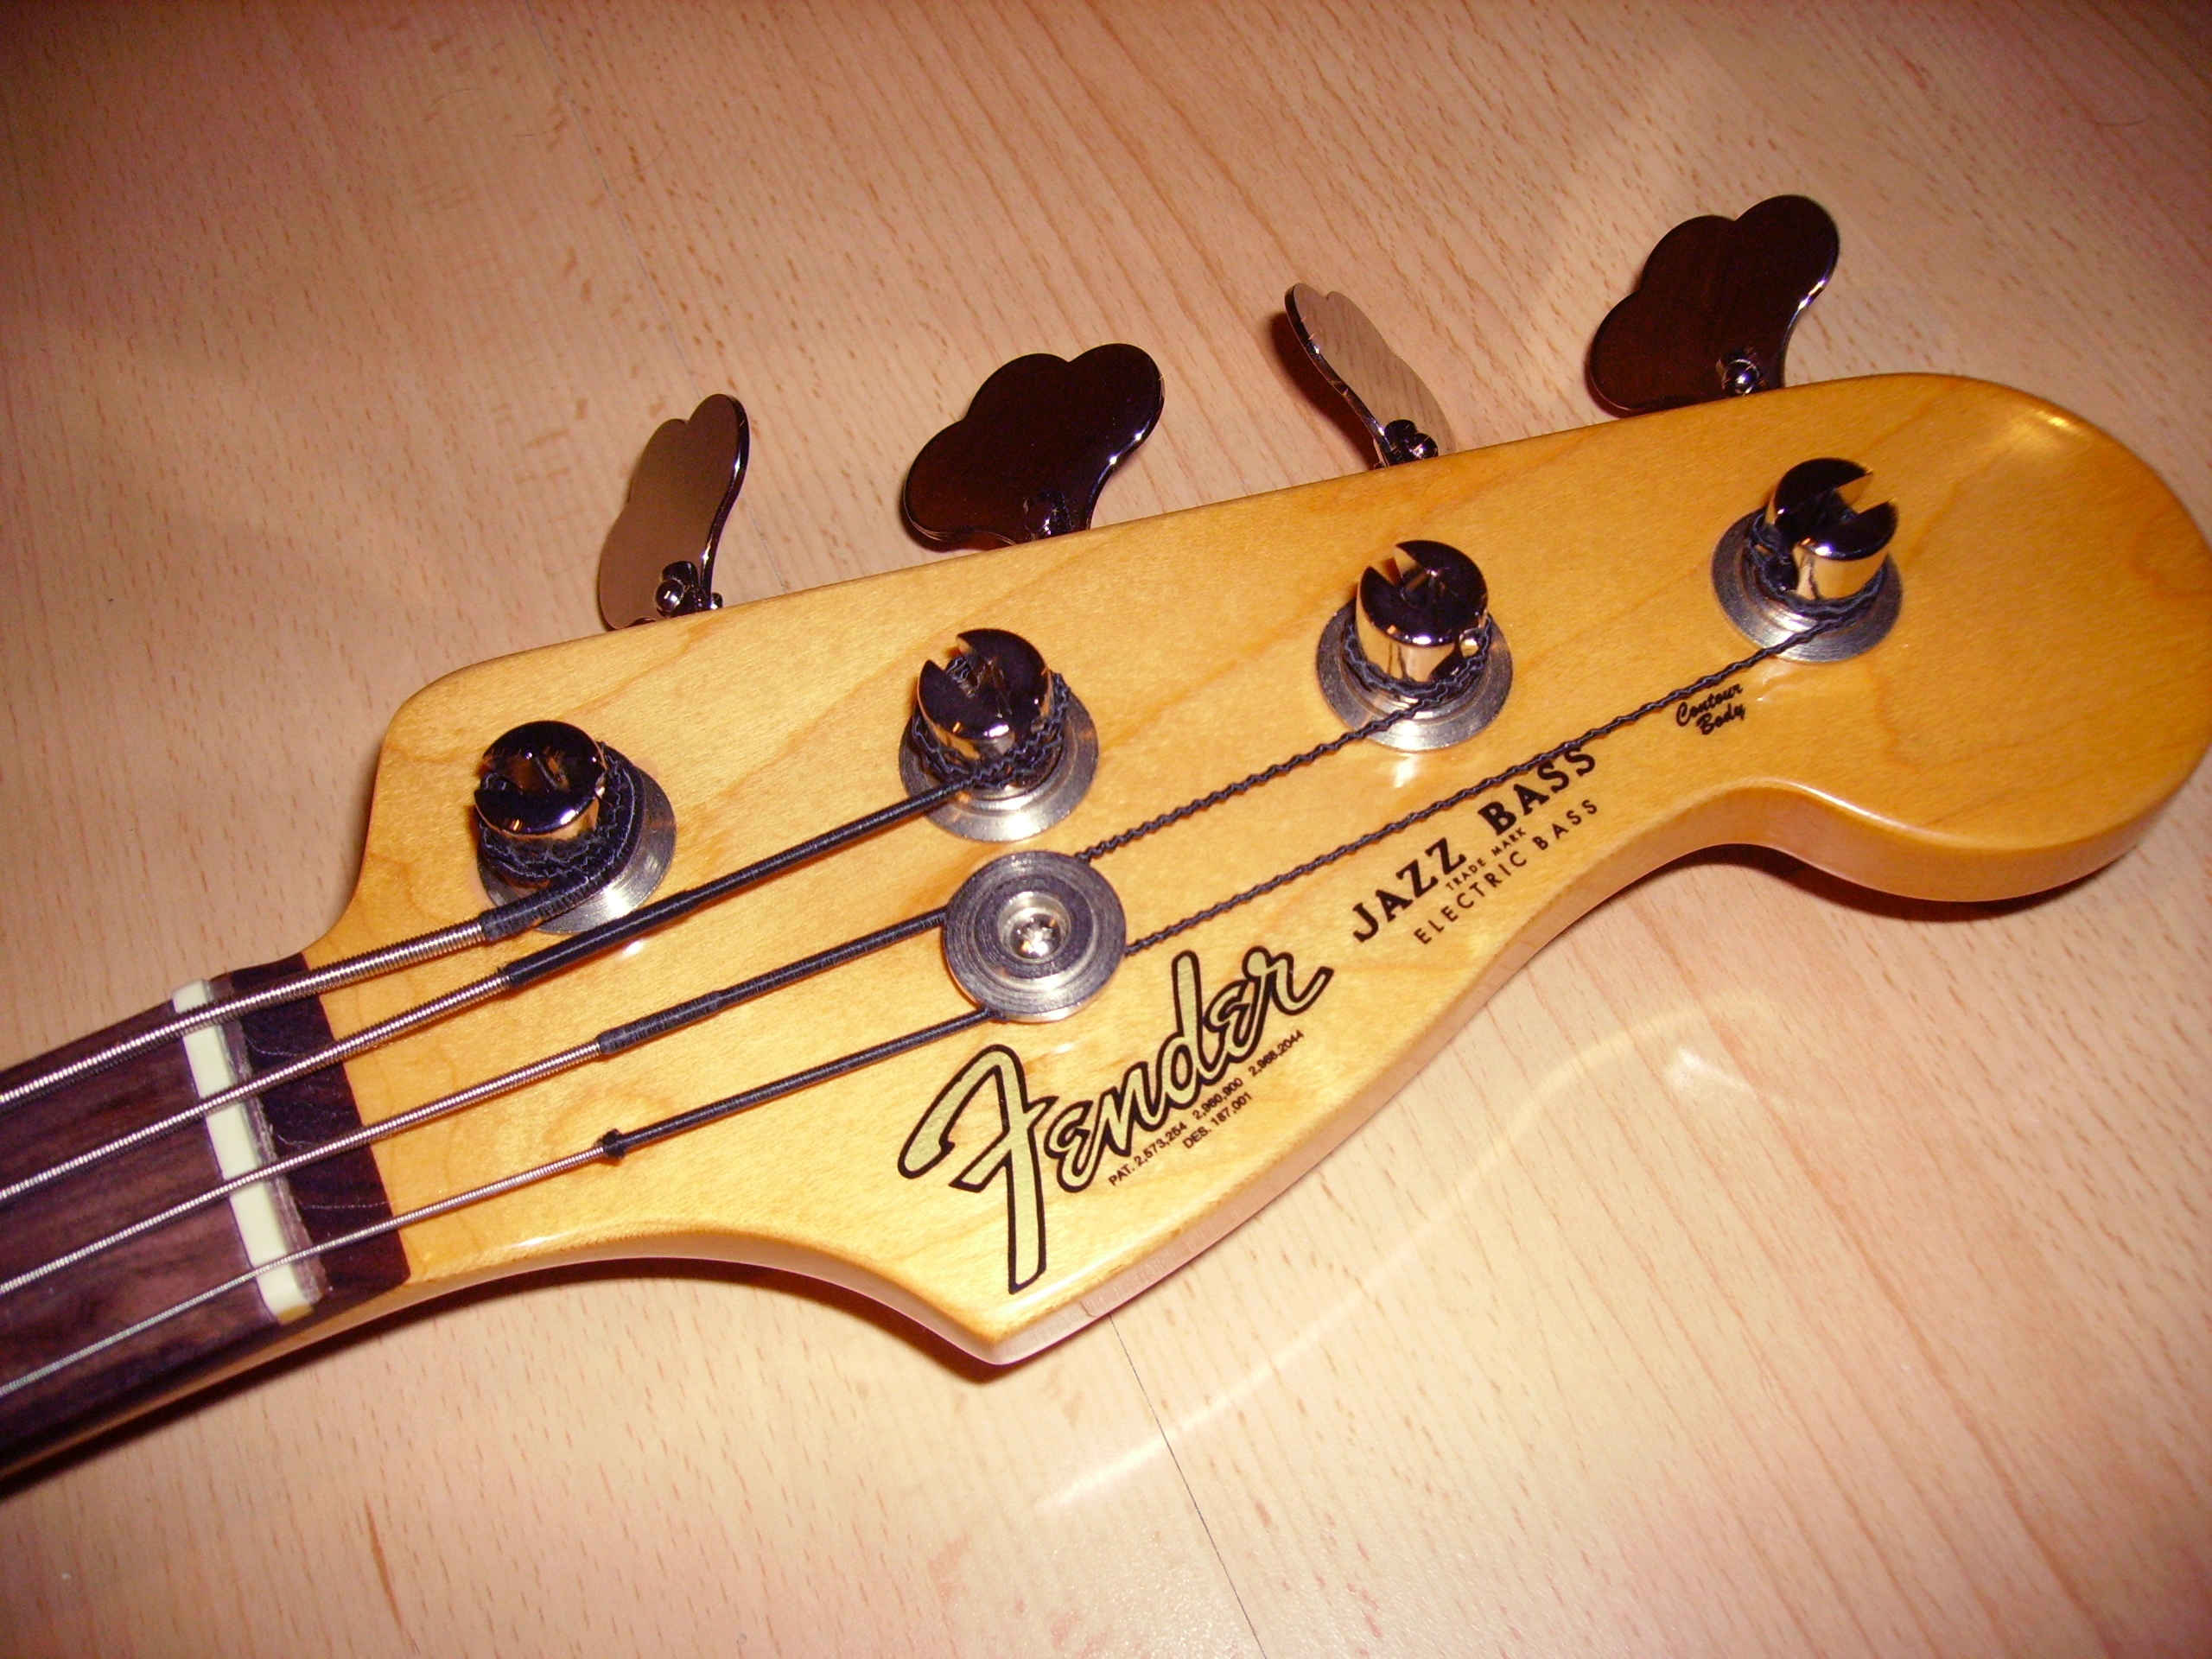 Fender Headstock Template http://en.wikipedia.org/wiki/File:Fender_Jazz_Bass_Headstock.jpg